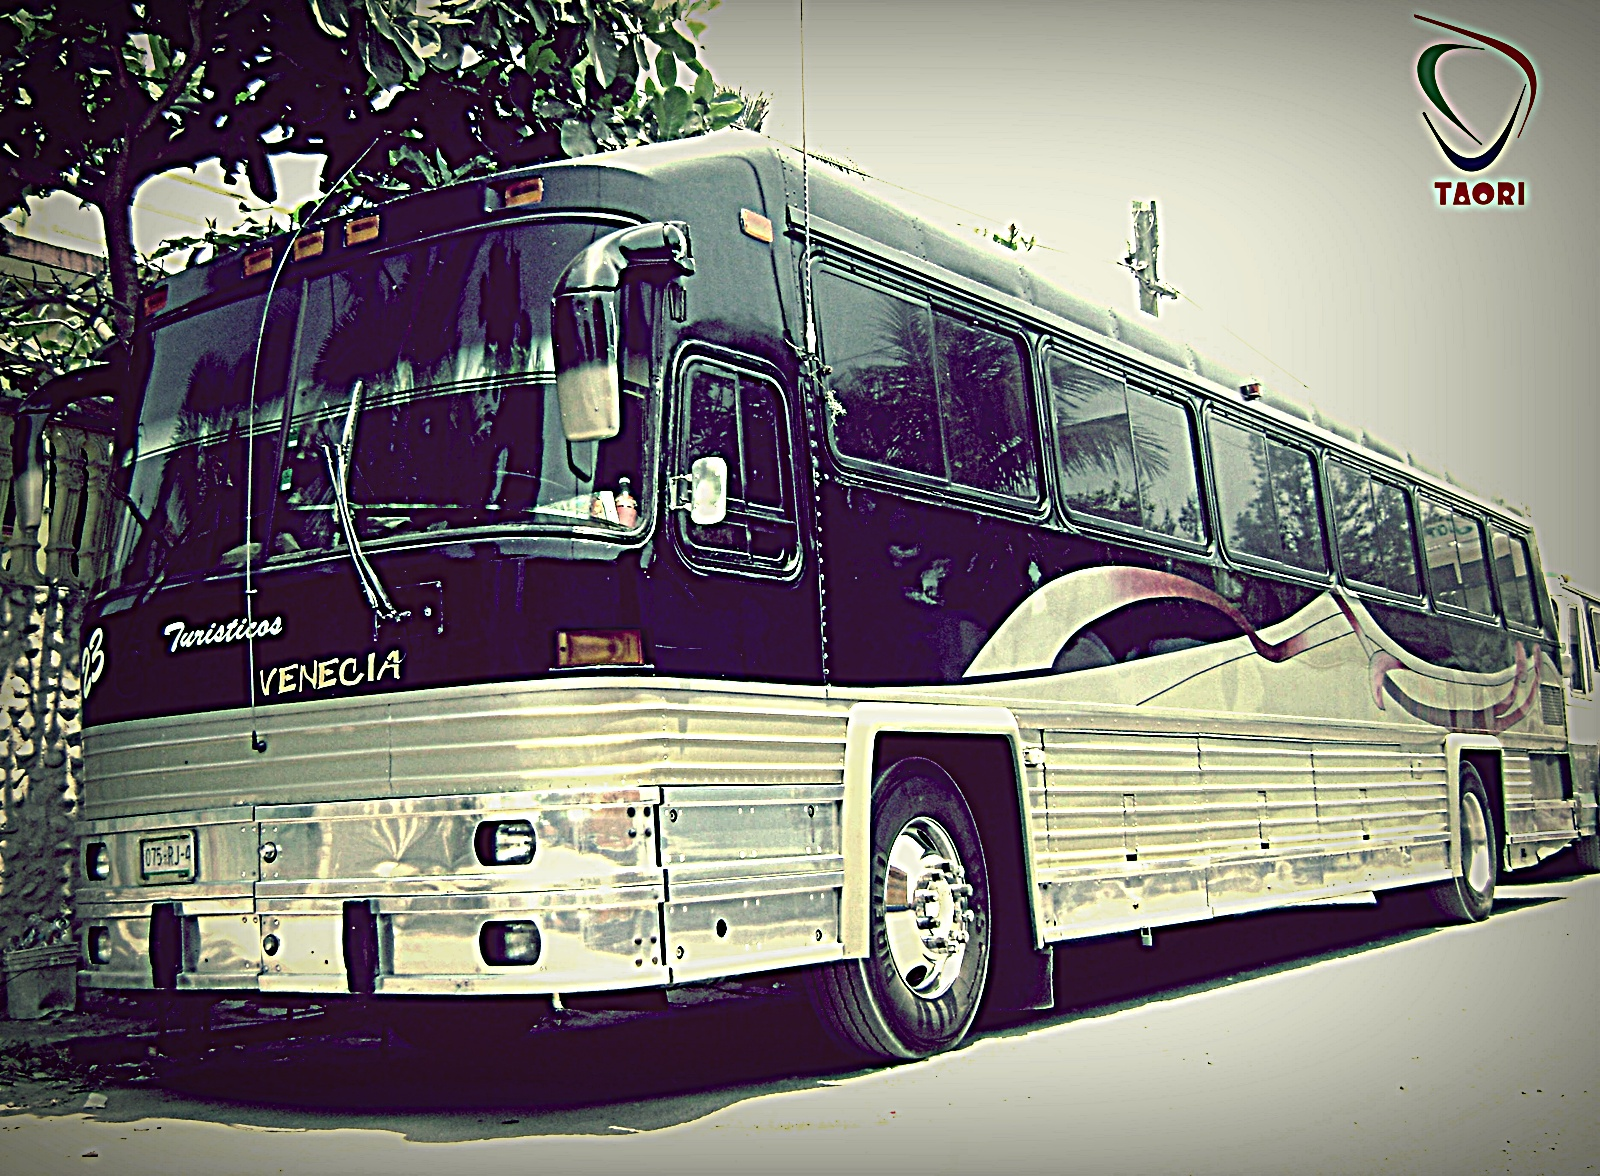 Pin autobuses dina en venta image search results on pinterest